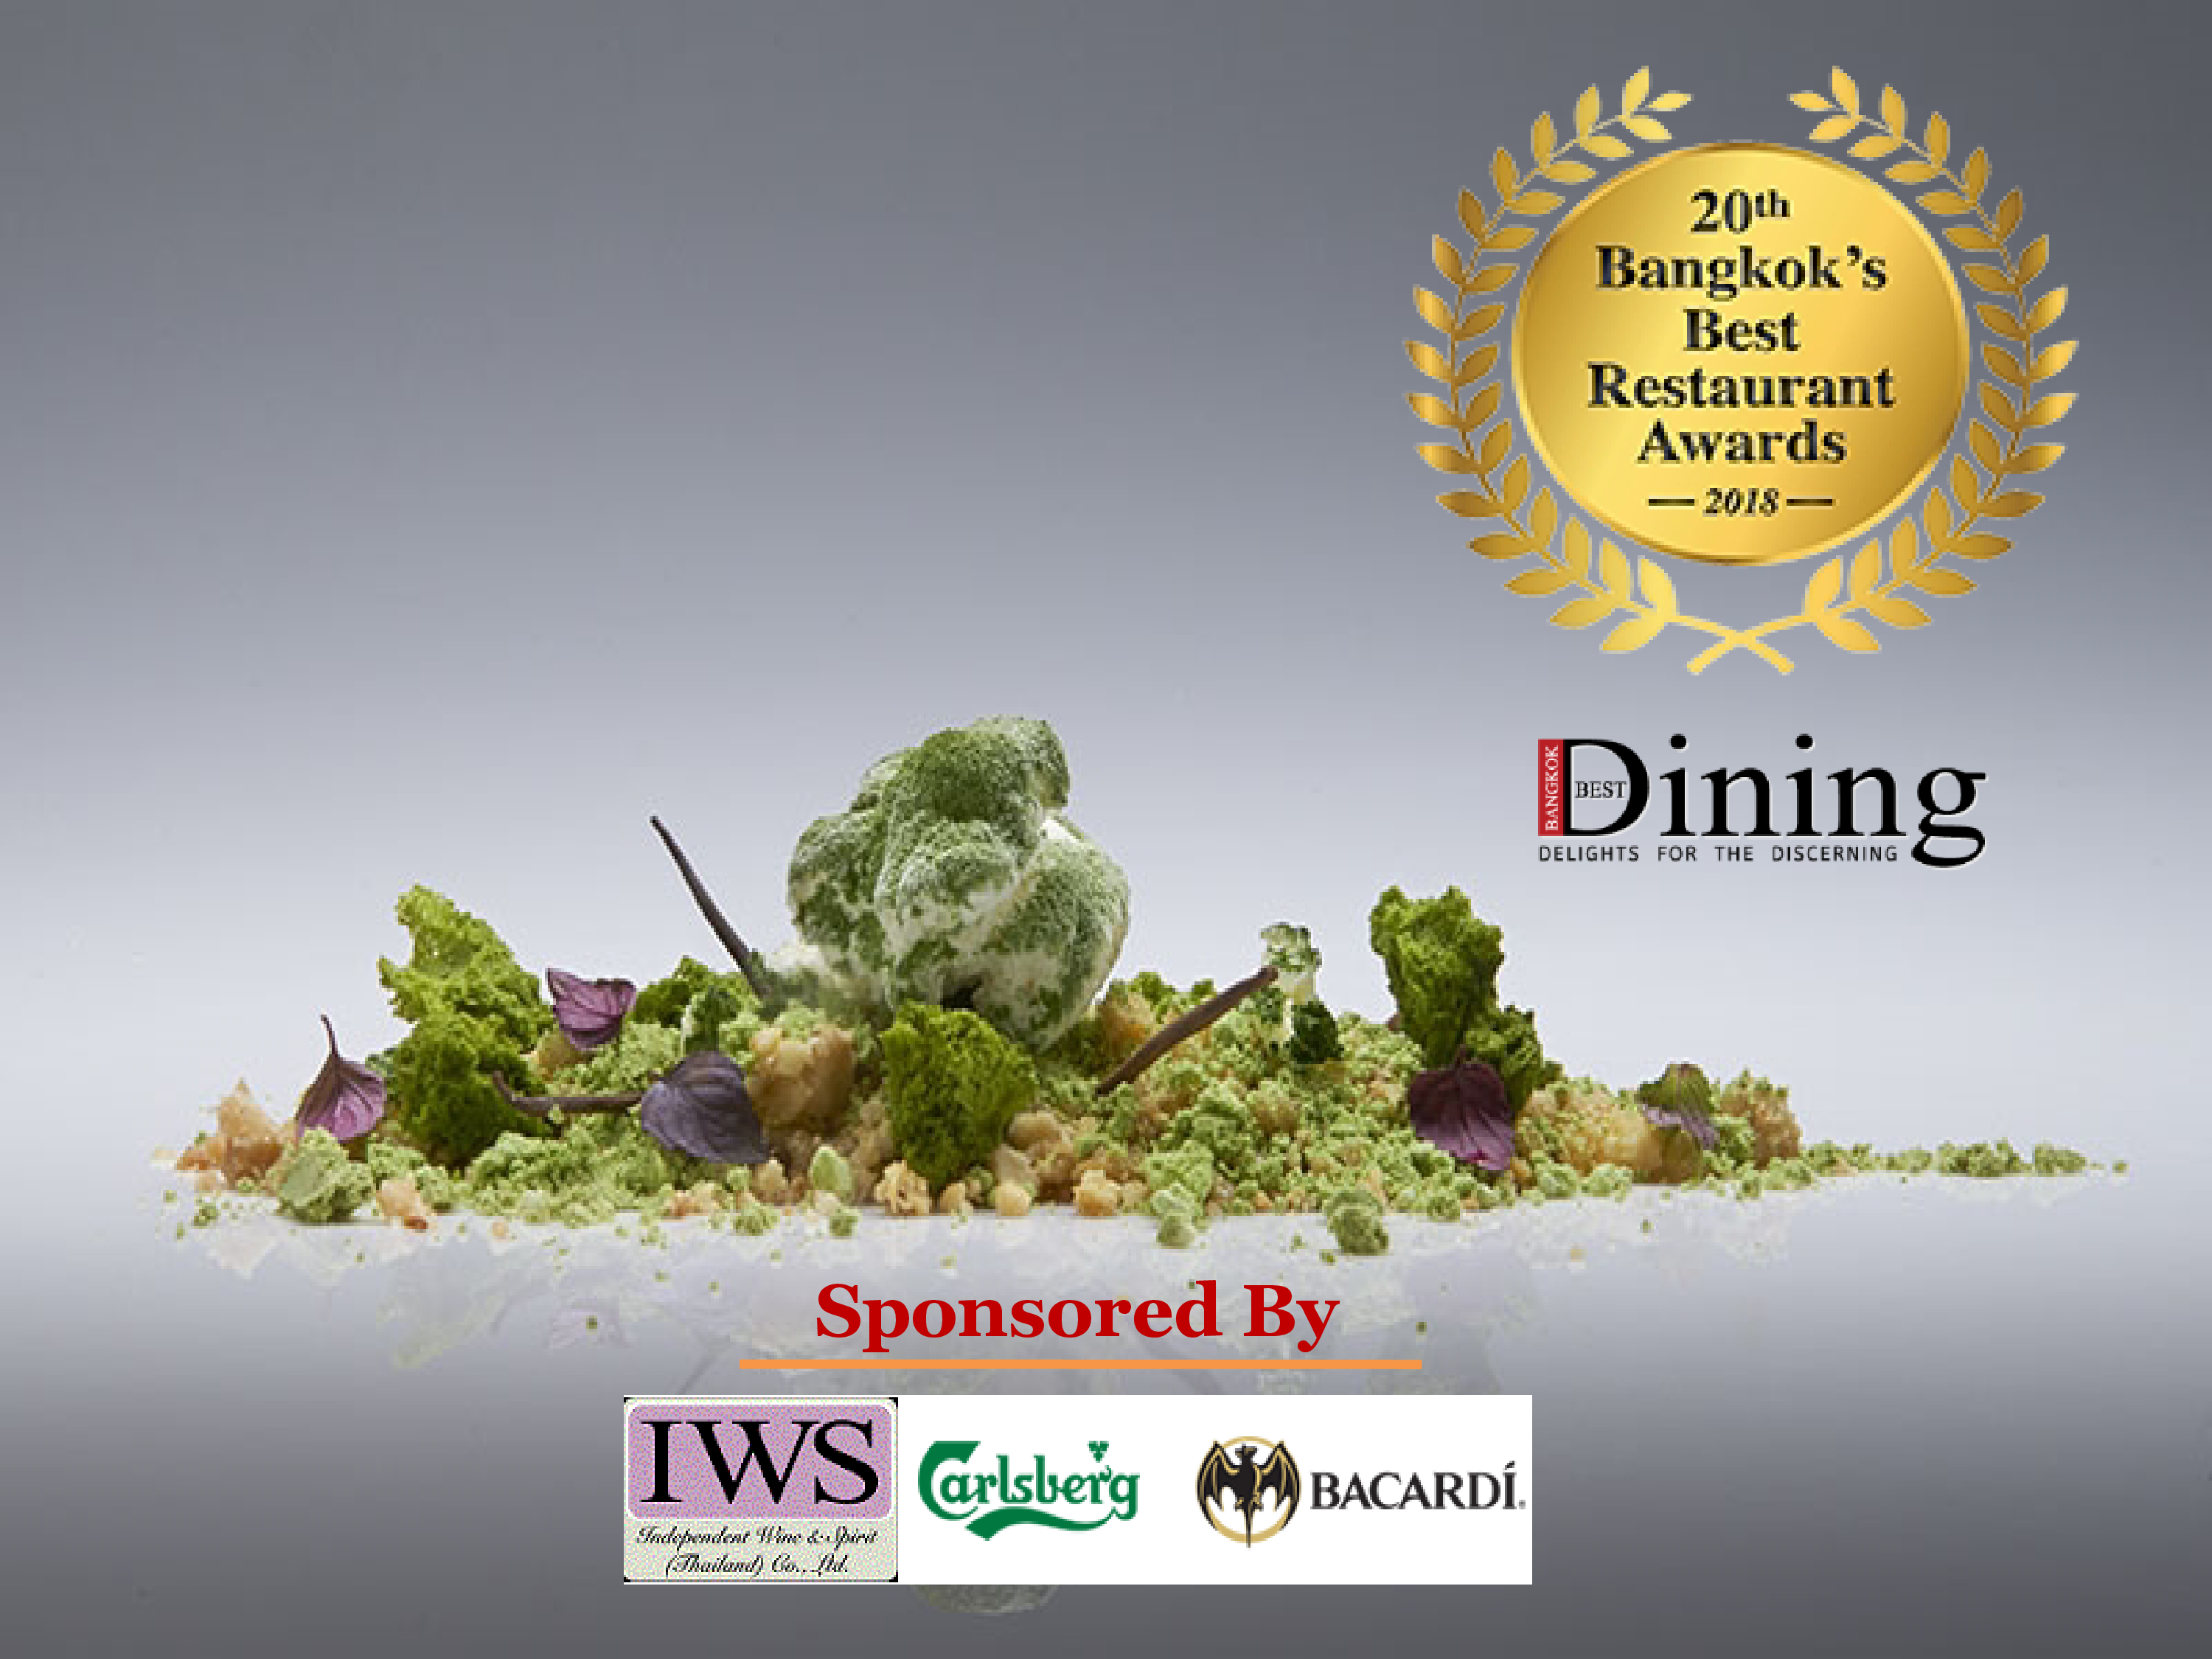 20th Bangkok's Best Restaurant Awards 2018 The 20th Bangkok's Best Restaurant Awards will be held at the Grand Ballroom of Shangri-la Hotel on June 11 , 2018 and is brought to you by the publishers of Bangkok's Best Dining & Entertainment magazine. Visit http://www.bangkokbestdining.com.